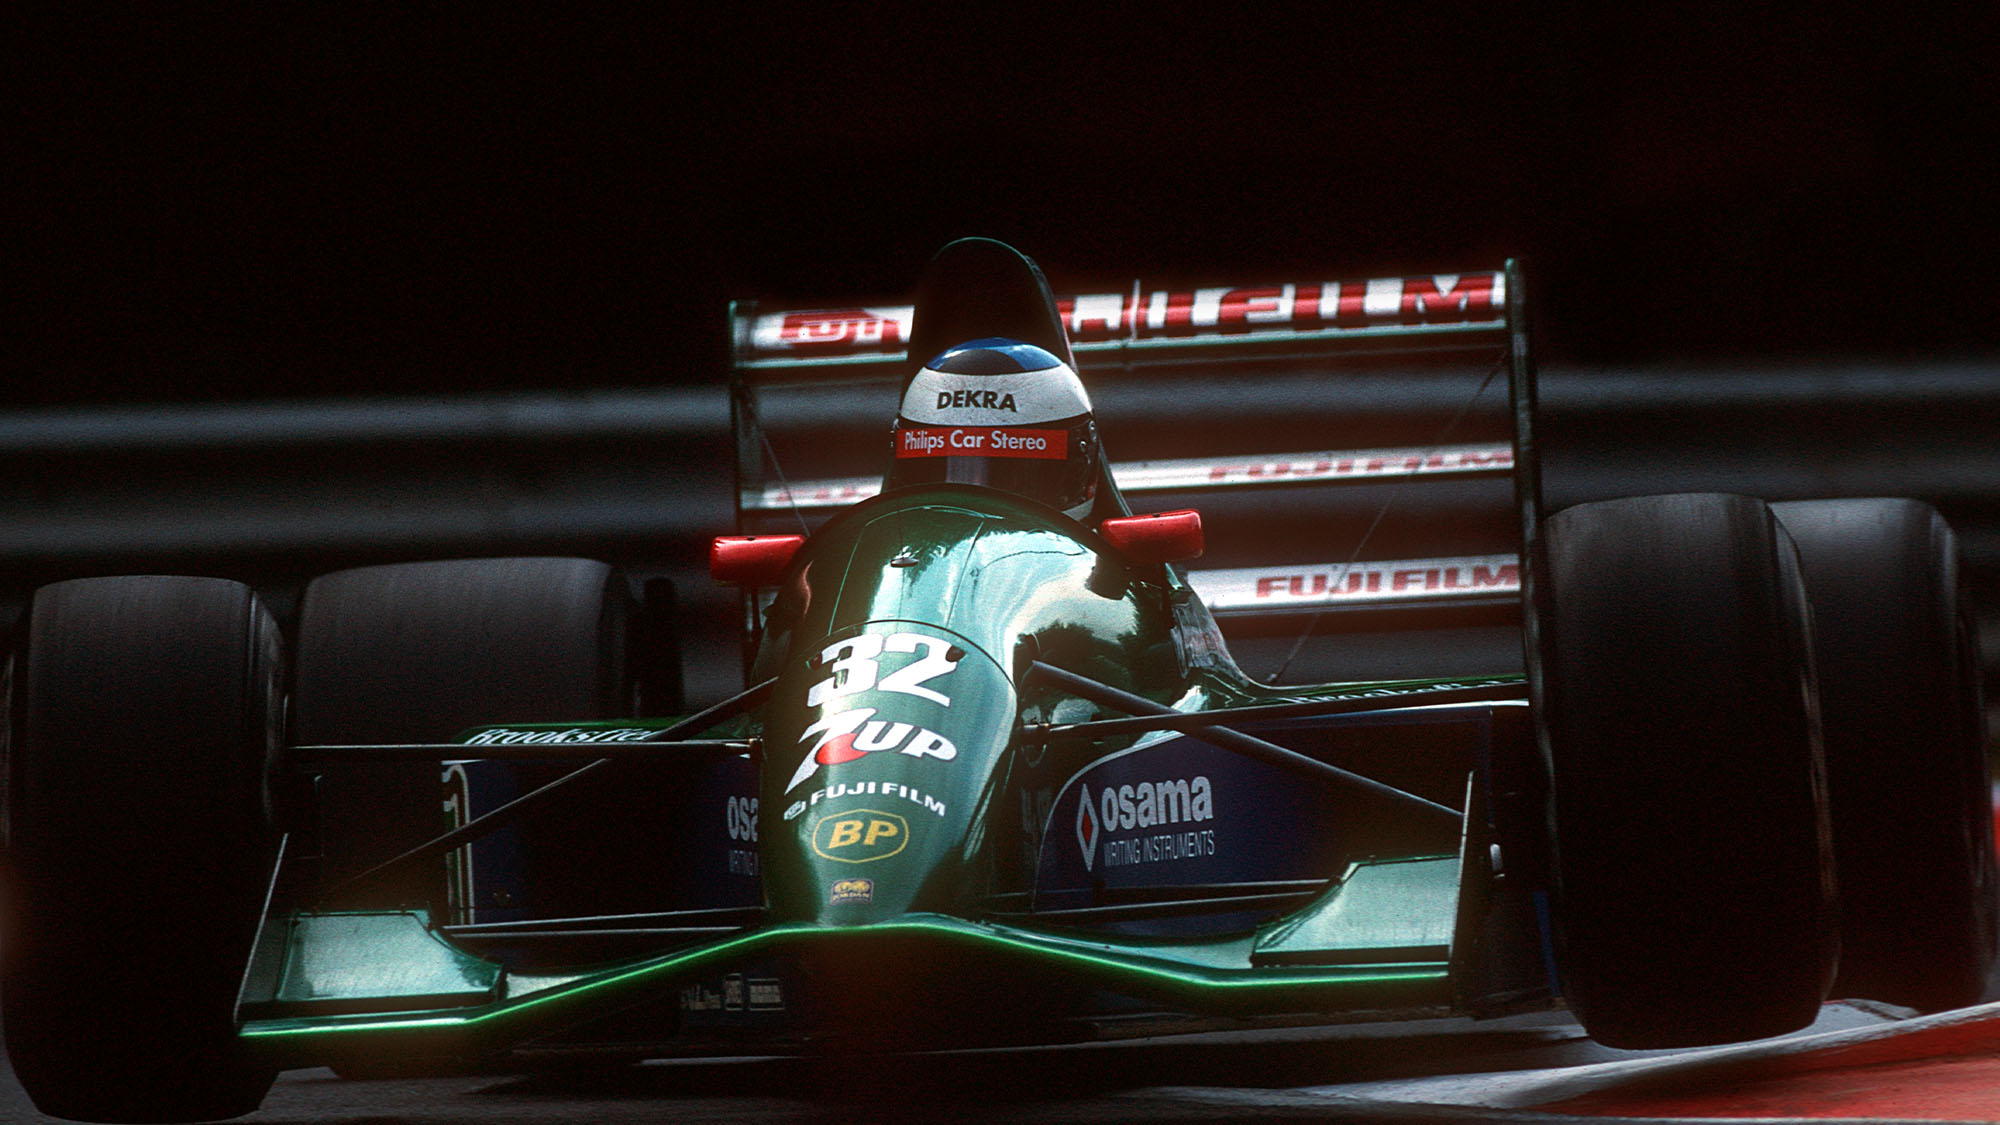 Michael Schumacher, Jordan-Ford 191, Grand Prix of Belgium, Spa Francorchamps, 25 August 1991. First Formula One race for Michael Schumacher. (Photo by Paul-Henri Cahier/Getty Images)